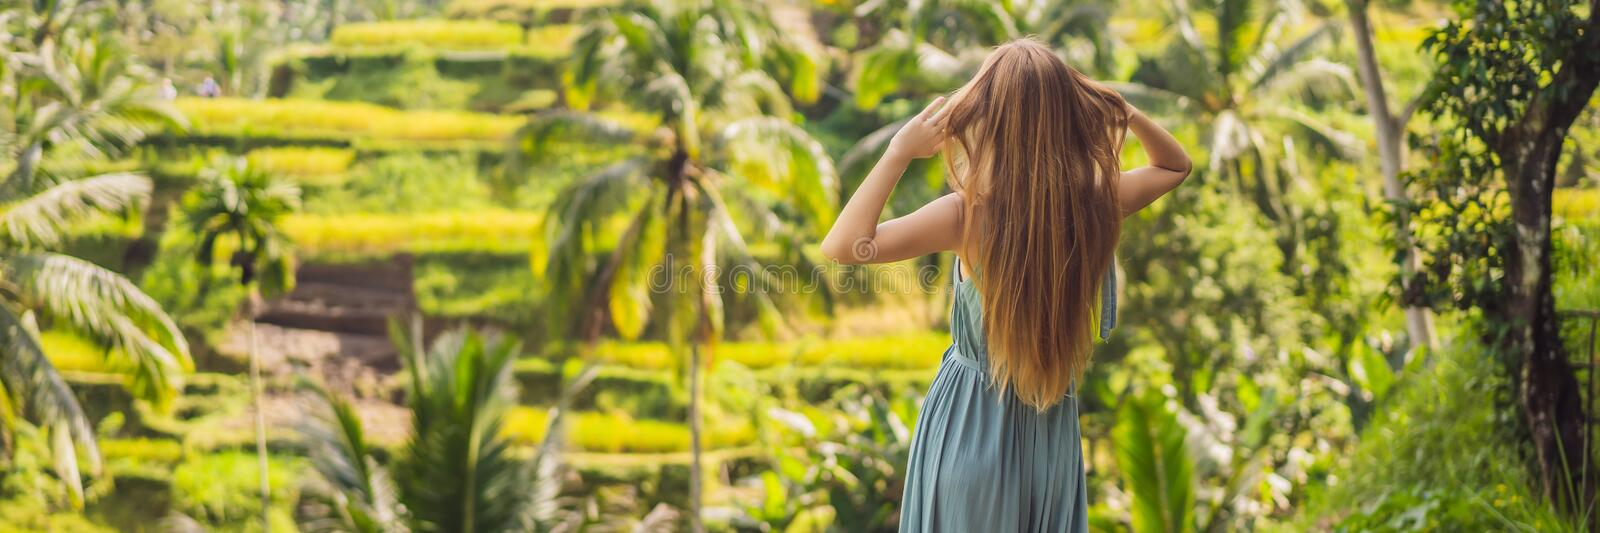 BANNER, LONG FORMAT Beautiful young woman walk at typical Asian hillside with rice farming, mountain shape green cascade royalty free stock photos